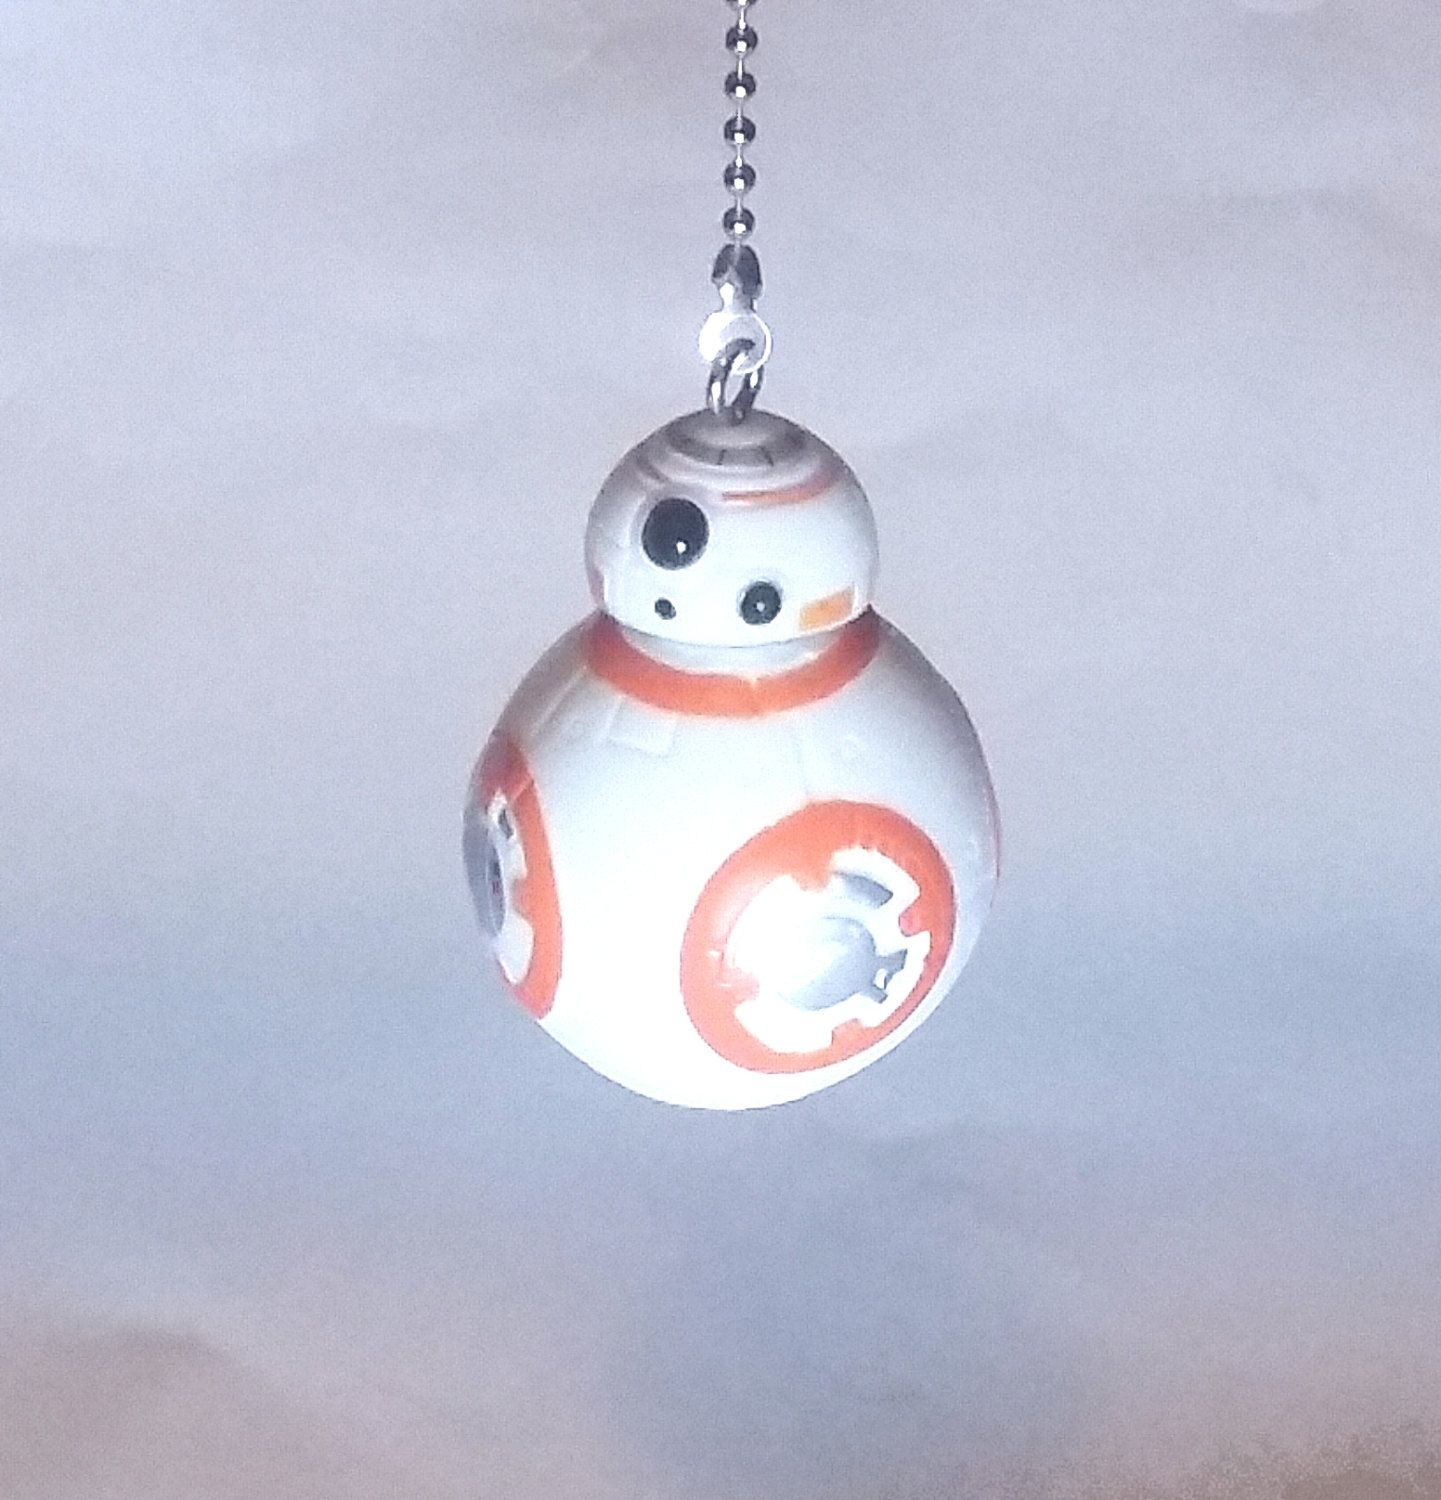 BB8 Ceiling Fan Pull   Light Pull Chain, Star Wars Decor, Kids Room Decor,  Gift For Boys, Gift For Girls